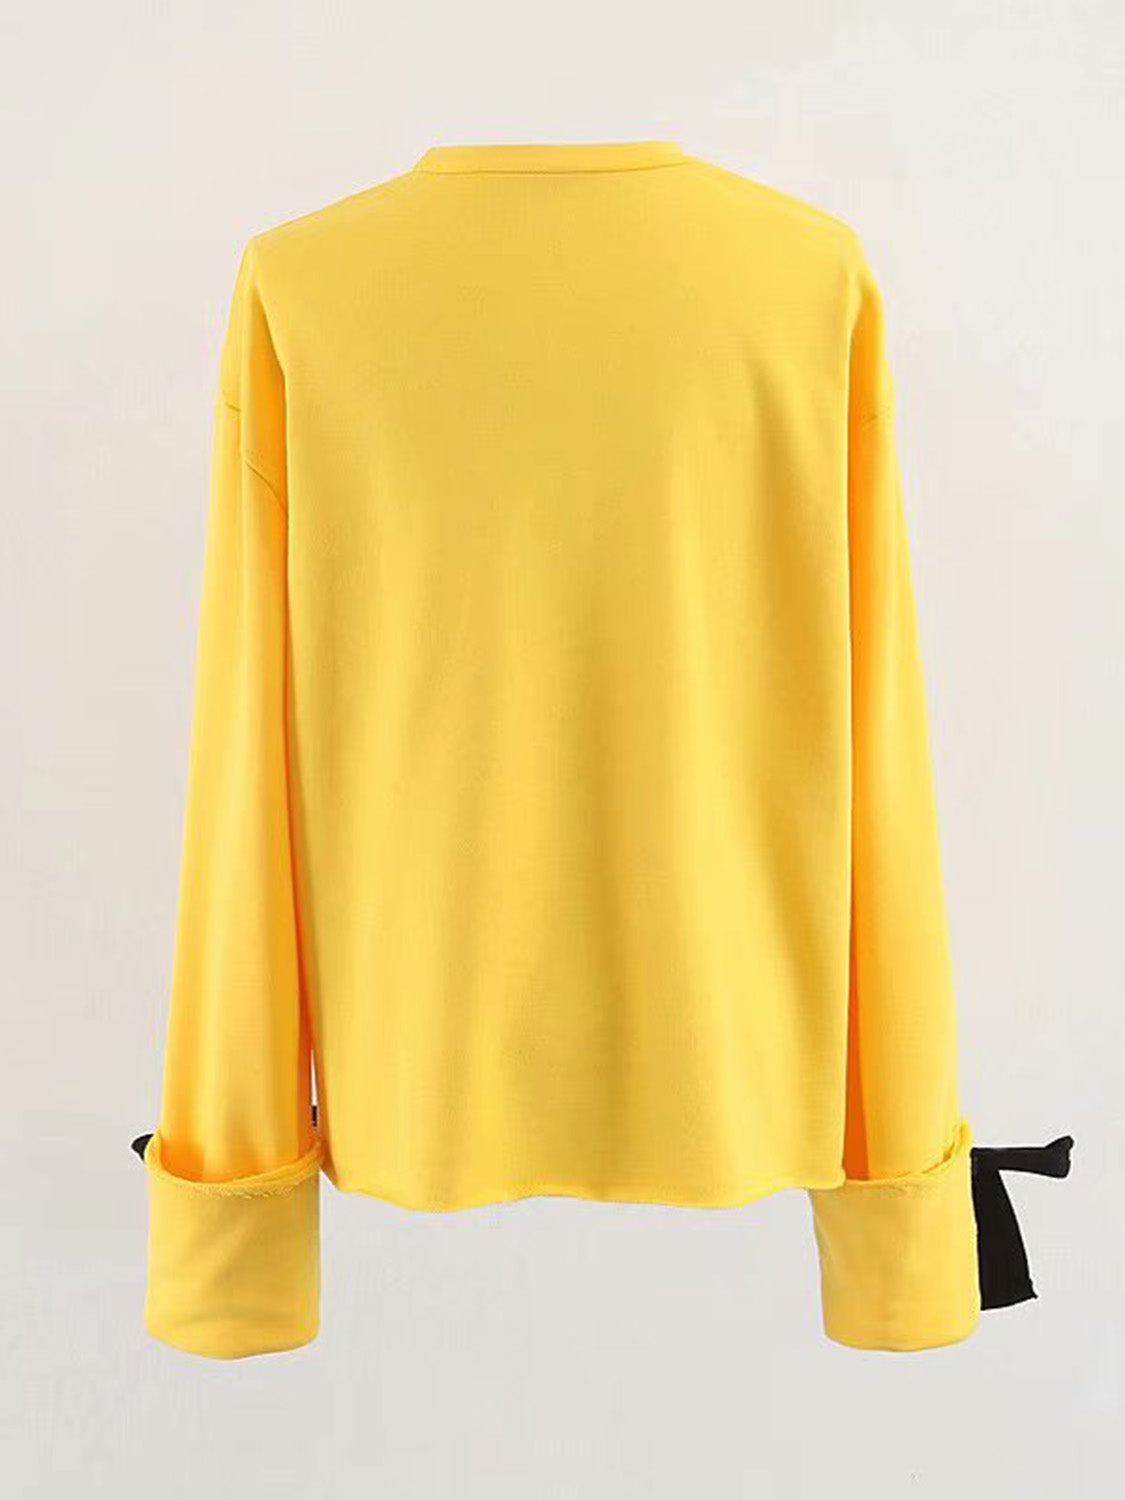 Yellow Women Sweatshirt Cotton Tie Cuff Long Sleeve